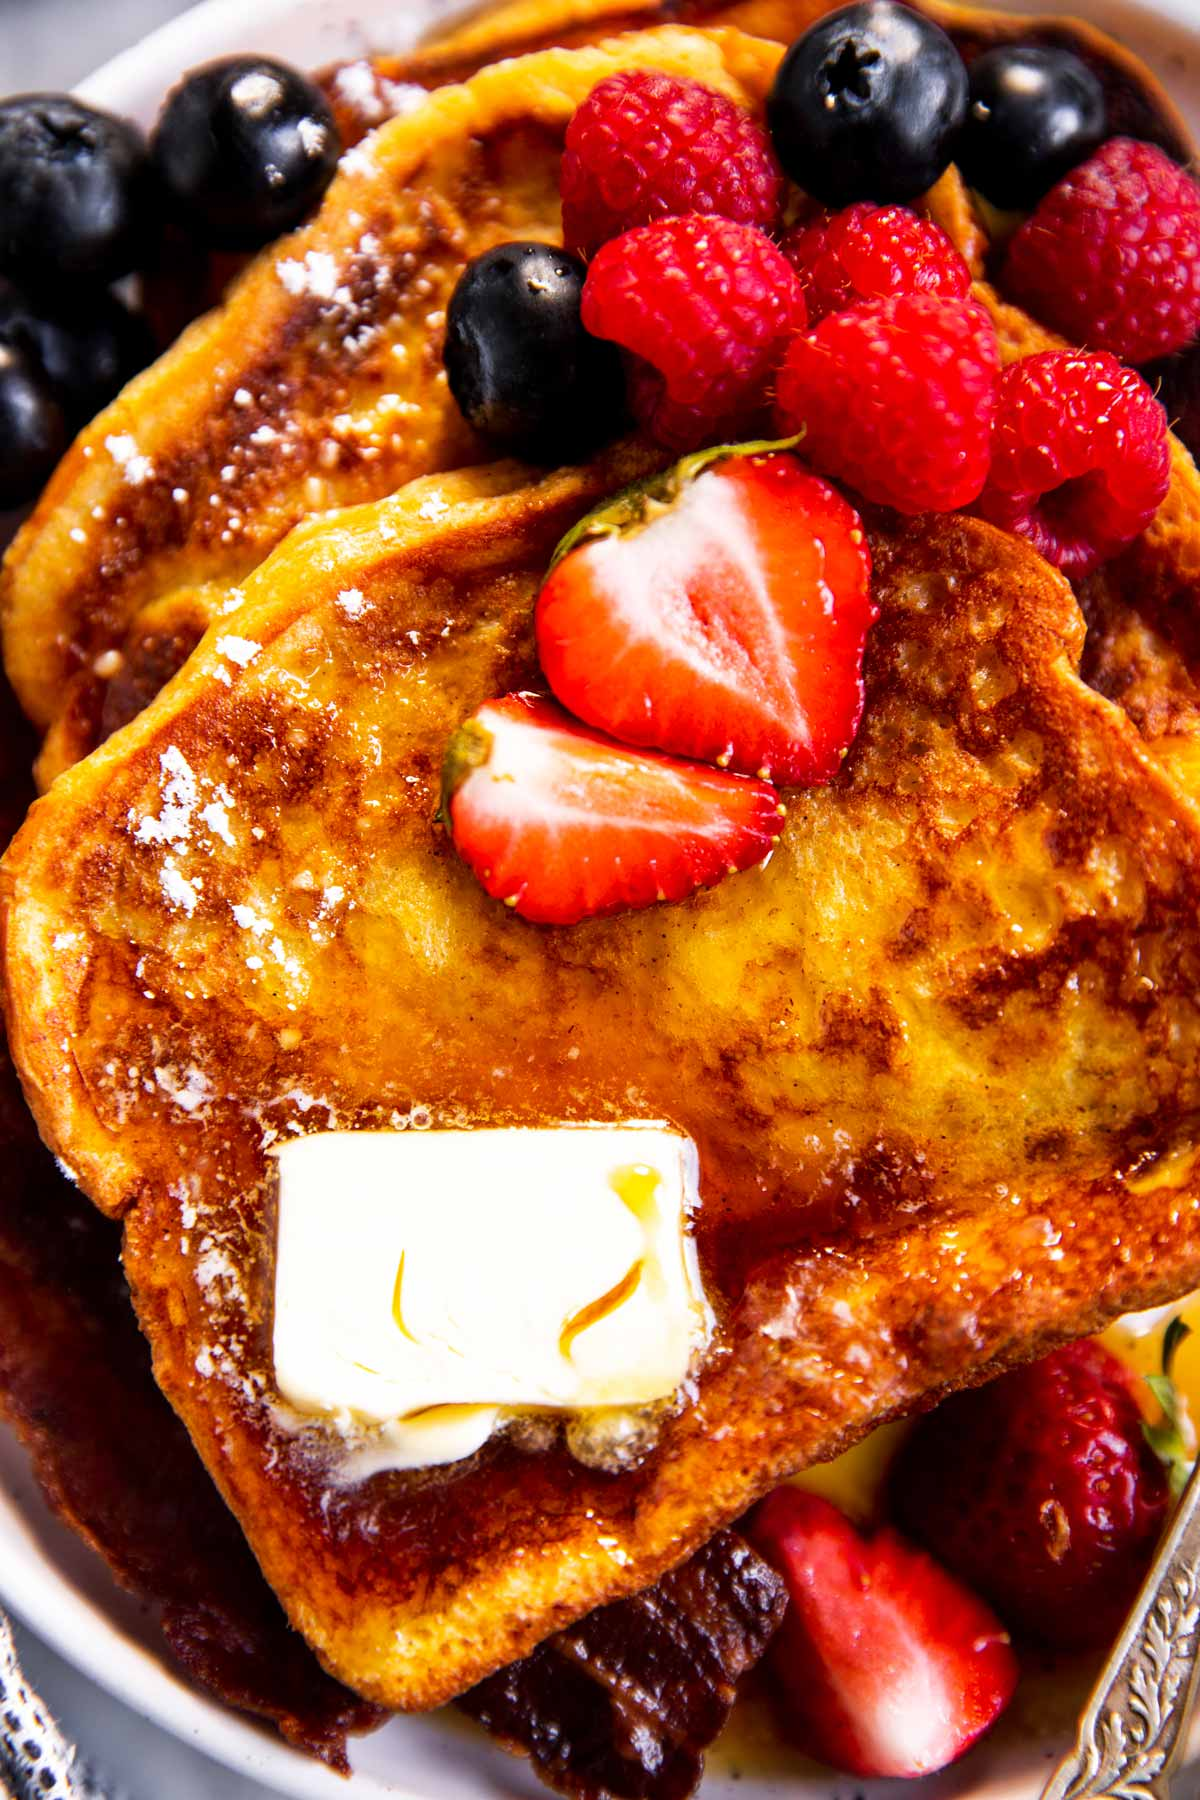 close up photo of French toast on plate with butter, maple syrup and fresh berries